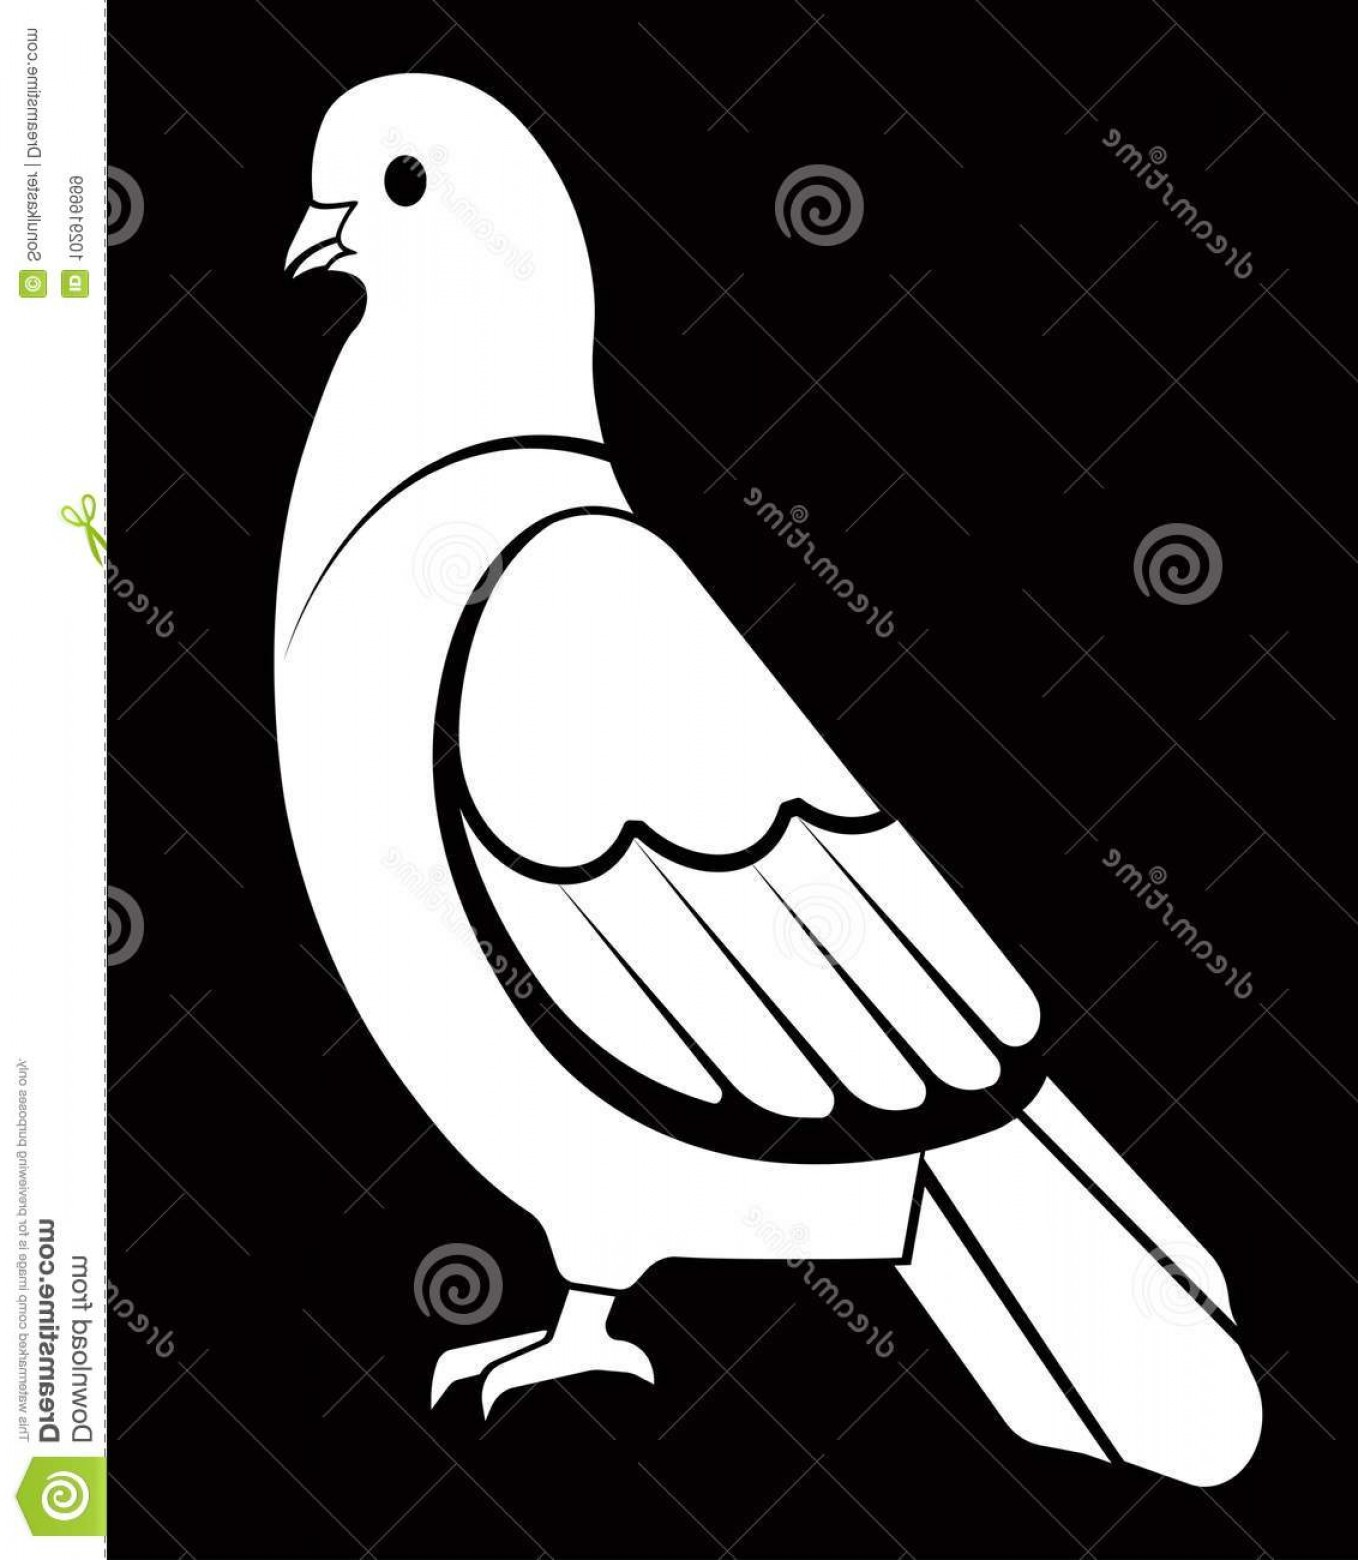 White Bird Vector: Pigeon Dove White Bird Vector Logo Template Isolated Symbol Icon Peace Freedom Post Mail Delivery Tattoo Pigeon Image